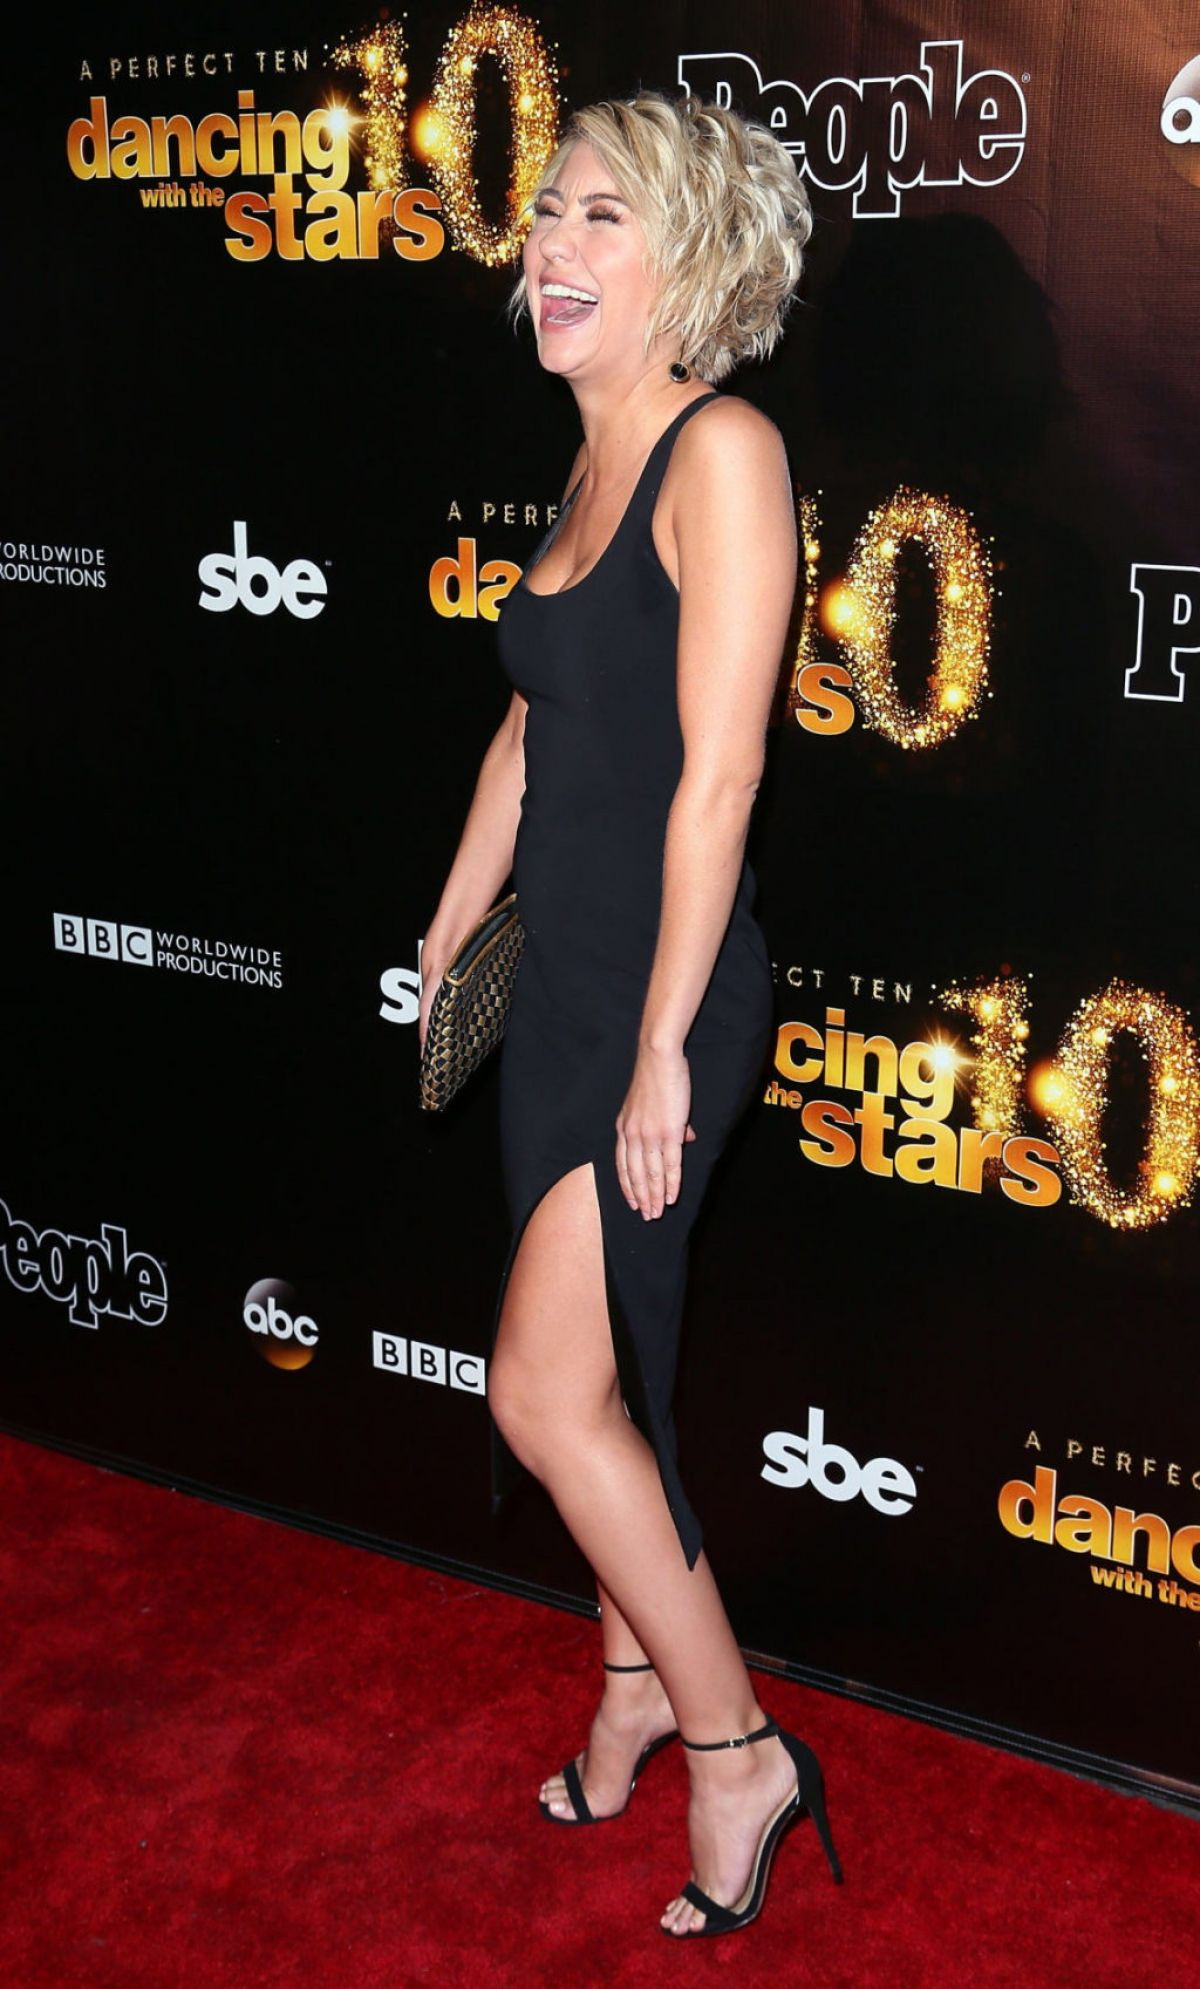 Chelsea Kane Dancing With The Stars Foxtrot